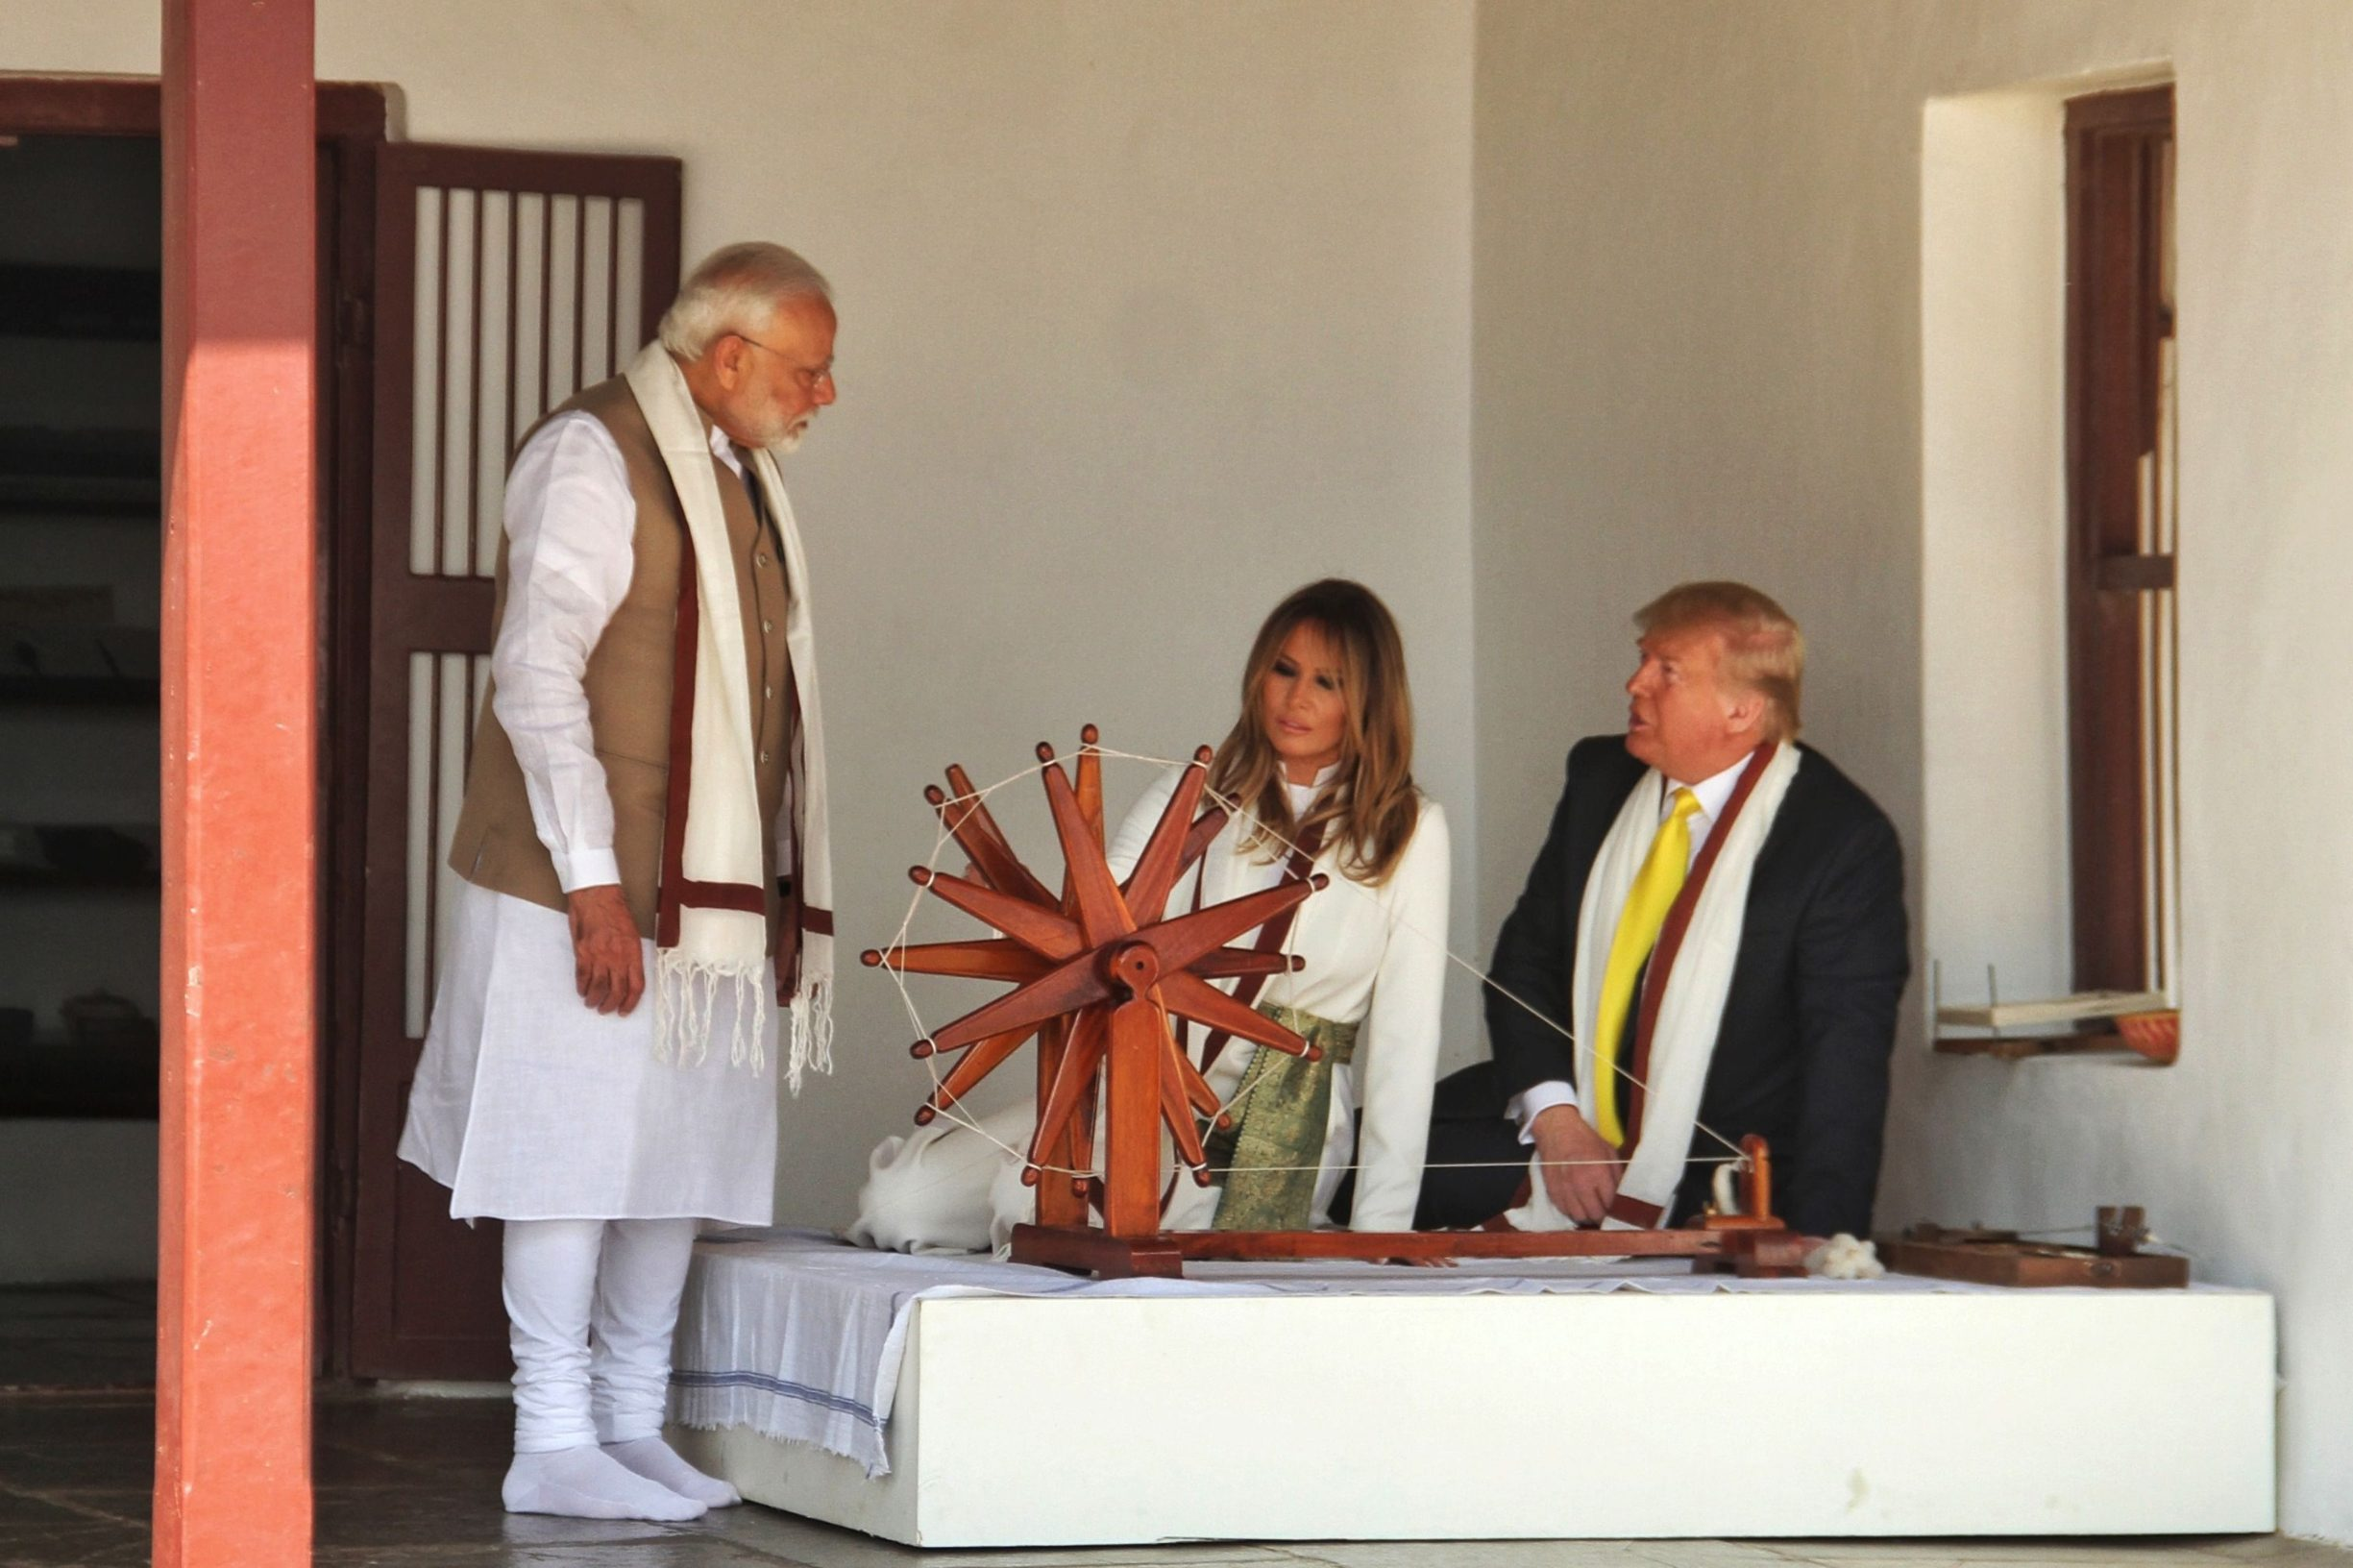 In this handout photograph taken and released by India's Ministry of External Affairs (MEA) on February 24, 2020, US President Donald Trump and First Lady Melania Trump listen to India's Prime Minister Narendra Modi (L) as they sit next to a charkha, or spinning wheel, during their visit at Gandhi Ashram in Ahmedabad. (Photo by - / Indian Ministry of External Affairs (MEA) / AFP) / RESTRICTED TO EDITORIAL USE - MANDATORY CREDIT